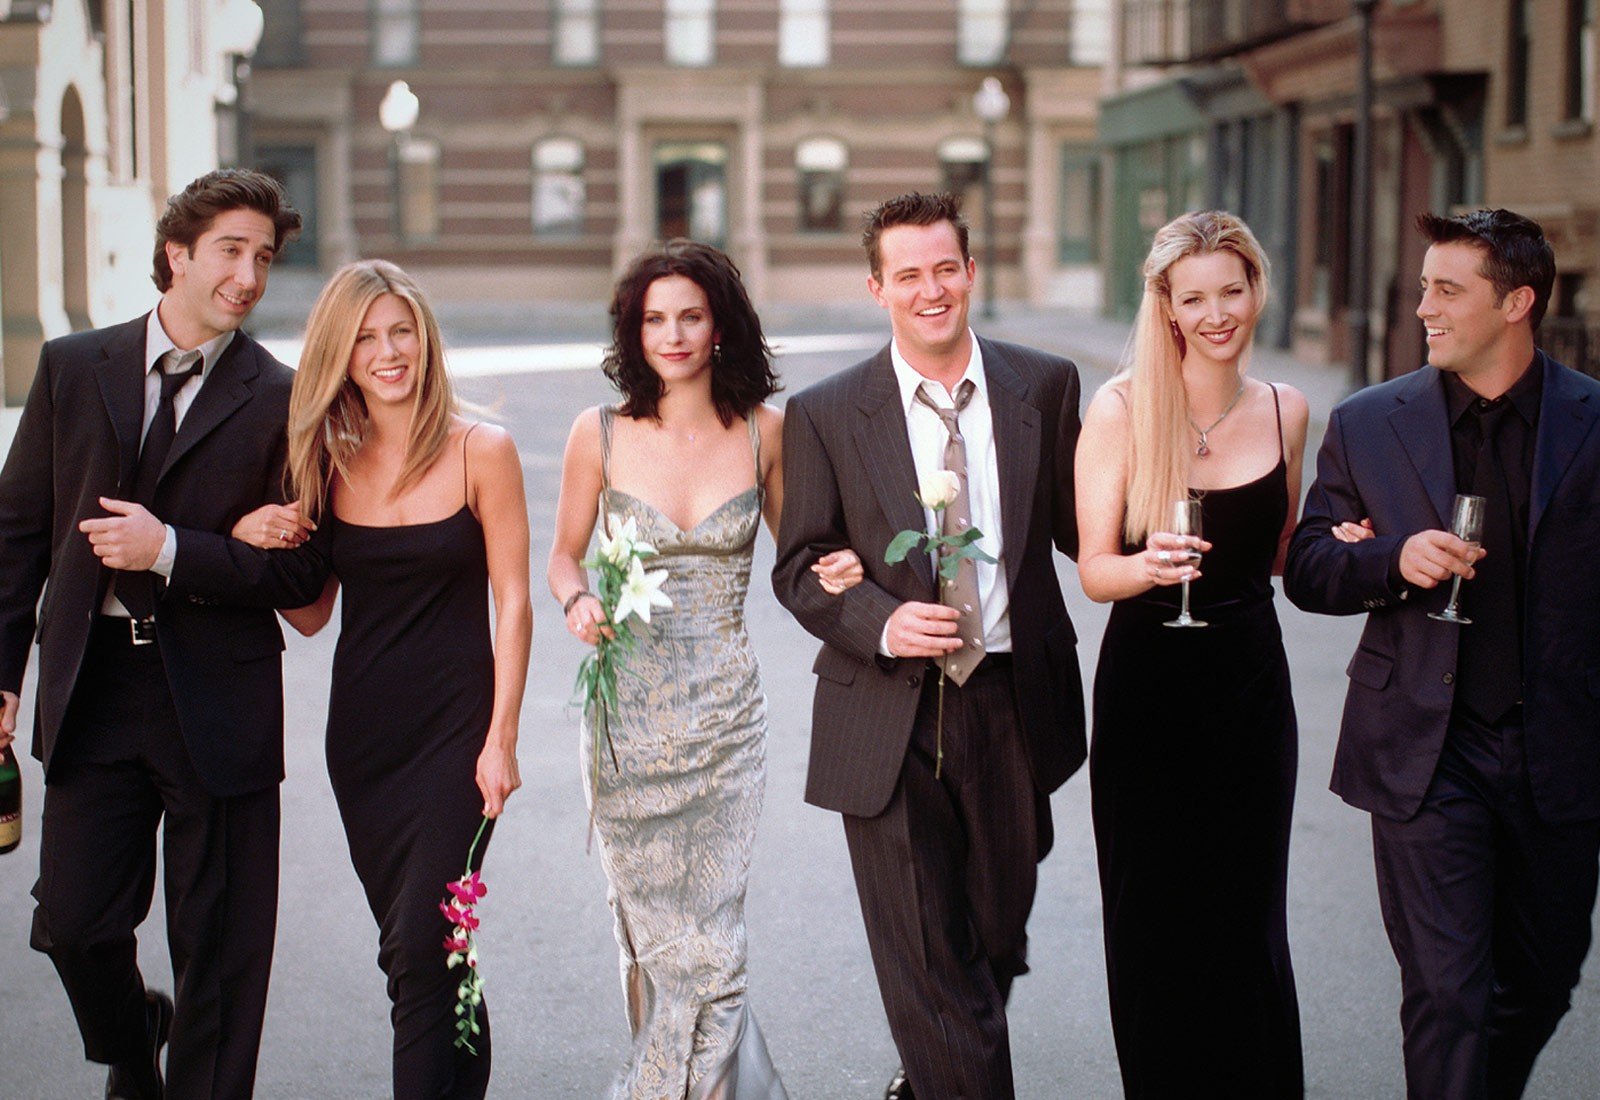 """'Friends' Is Coming Soon And Here's What You Need To Know! Pivot Pivot! As Ross Geller aka David Schwimmer said in Friends, it is time to pivot now that Corona Virus has started to subside in the countries around the world. HBO Max now pivoting the production plans for the reunion of Friends considering the virus and its current status. It is time to shout from the rooftops because the most popular show of all time is coming back! Ross Reveals The Details David Schwimmer who played Ross Geller in the 90s sitcom has revealed the details of the upcoming reunion. While talking to the host in 'The Tonight Show', he revealed that tentative plans are being made to film the reunion in quarantine, claiming that it is going to be special for every fan.  The highly anticipated reunion has been in works since long and was scheduled to begin shooting in March. However, the public health emergency that followed the pandemic outbreak in the country brought a halt to it. When's FRIENDS Coming Back? David in his interview with Jimmy Fallon shared: """"It's supposed to happen maybe in August — the middle of August.  """"But honestly, we're gonna wait and see another week or two if we all determine it's really safe enough to do. And if not, then we'll wait until it's safe. On the topic of the reunion and who among the OG cast is coming back, David shared the best news that everyone including Jennifer Aniston, Courtney Cox, Mathew Perry, Lisa Kudrow, and Matt LeBlanc will be a part of it. He further said that he and the other cast members """"would love to shoot the special"""" that was born as an unscripted conversation among the onscreen friends on the show's original soundstage in the Burbank.  Were Ross & Rachel On A Break? Among other things that Schwimmer talked about, he also shared his opinion on the age-old debate that has rocked the entertainment fraternity and its viewers since the show was launched. Were Ross and Rachel really """"on a break"""" when she accused him of cheating on her durin"""